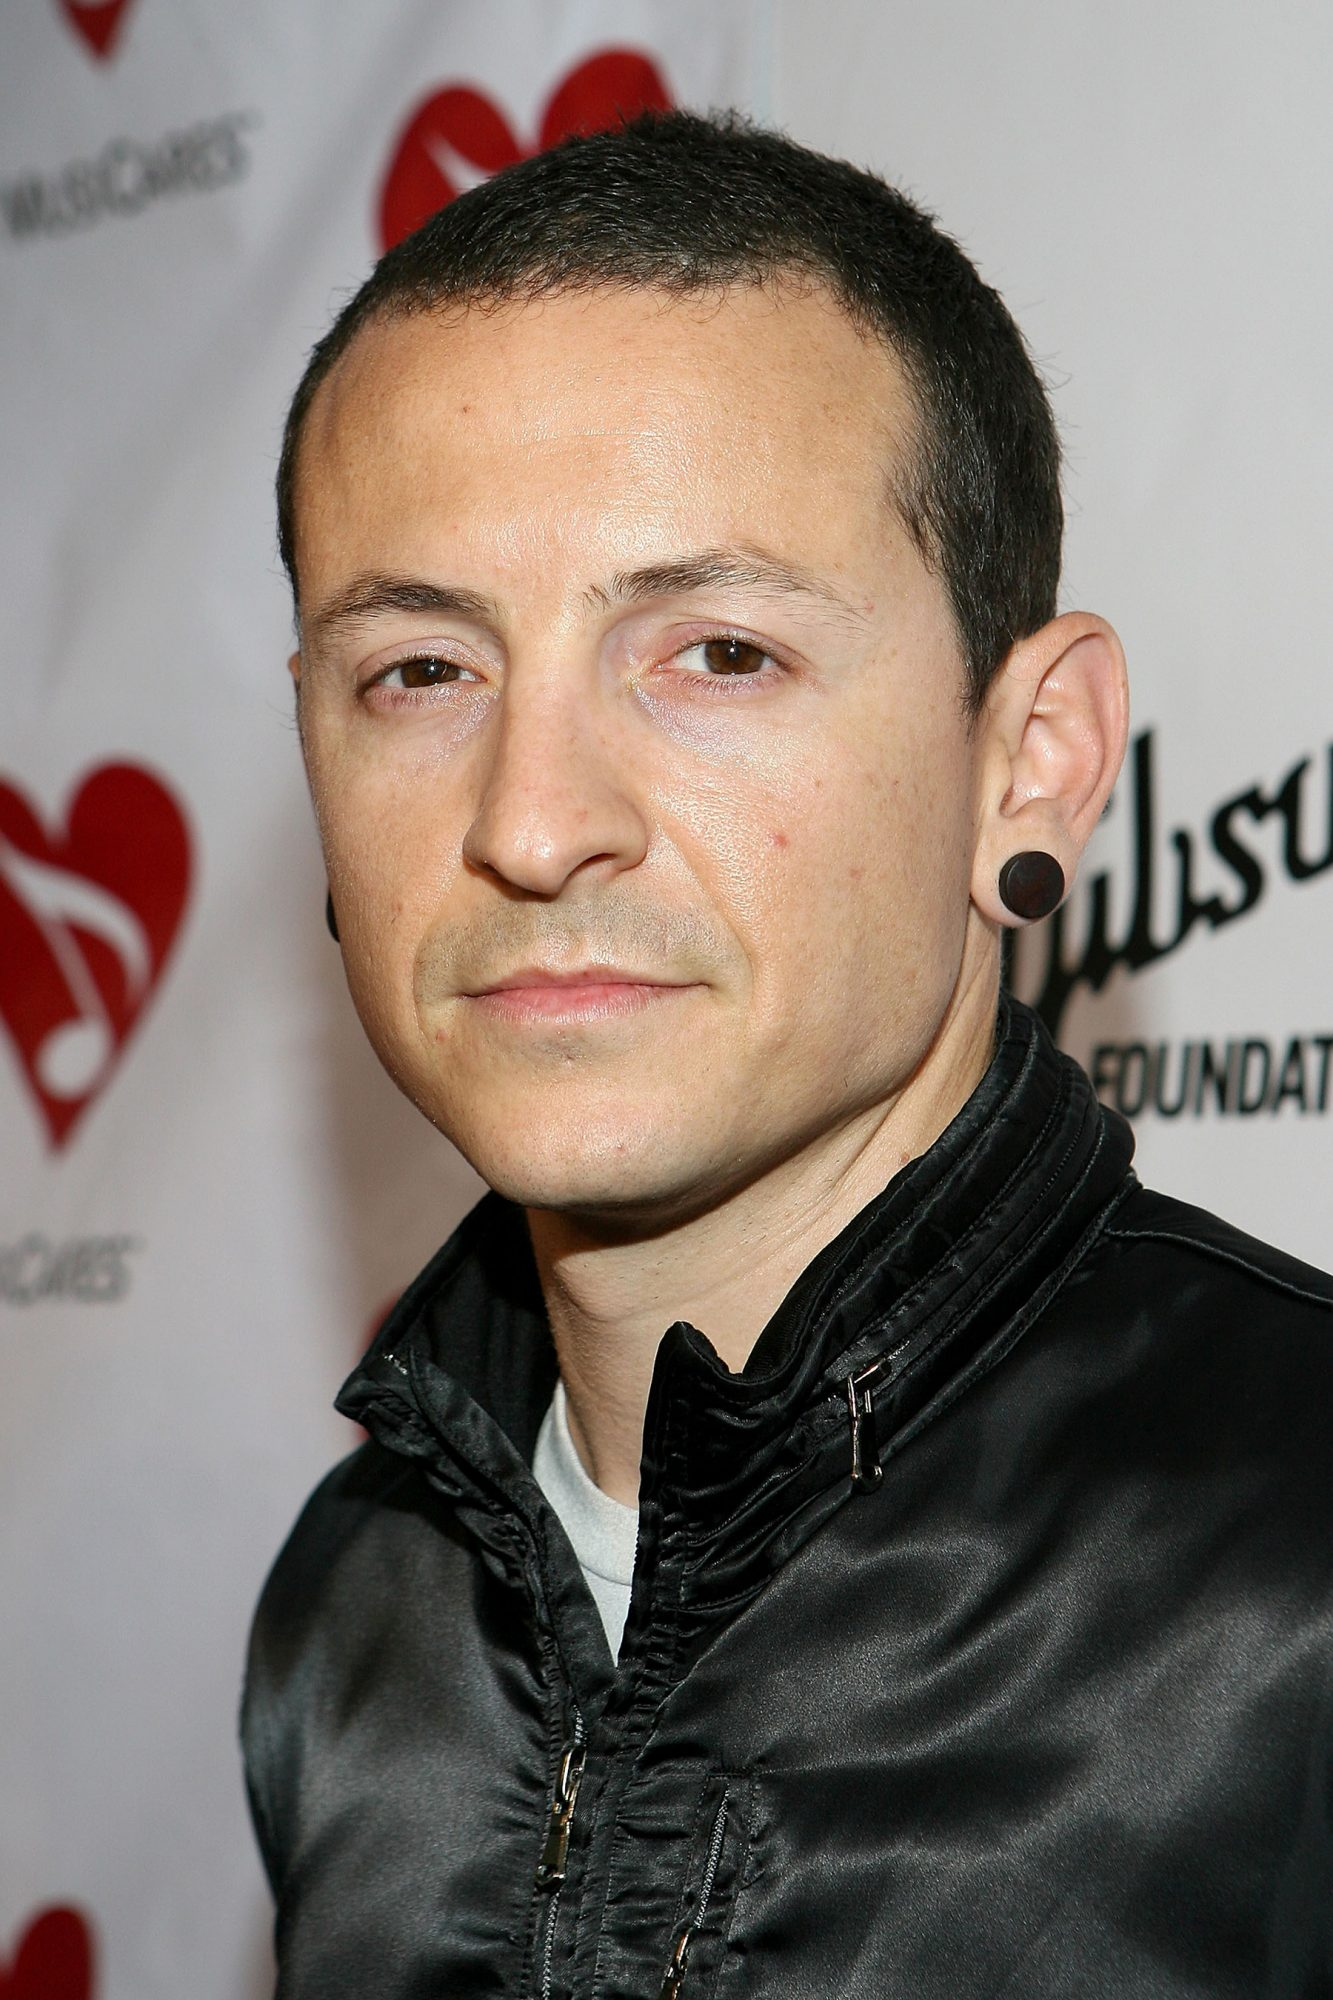 The 4th Annual MusiCares MAP Fund Benefit Concert - Red Carpet